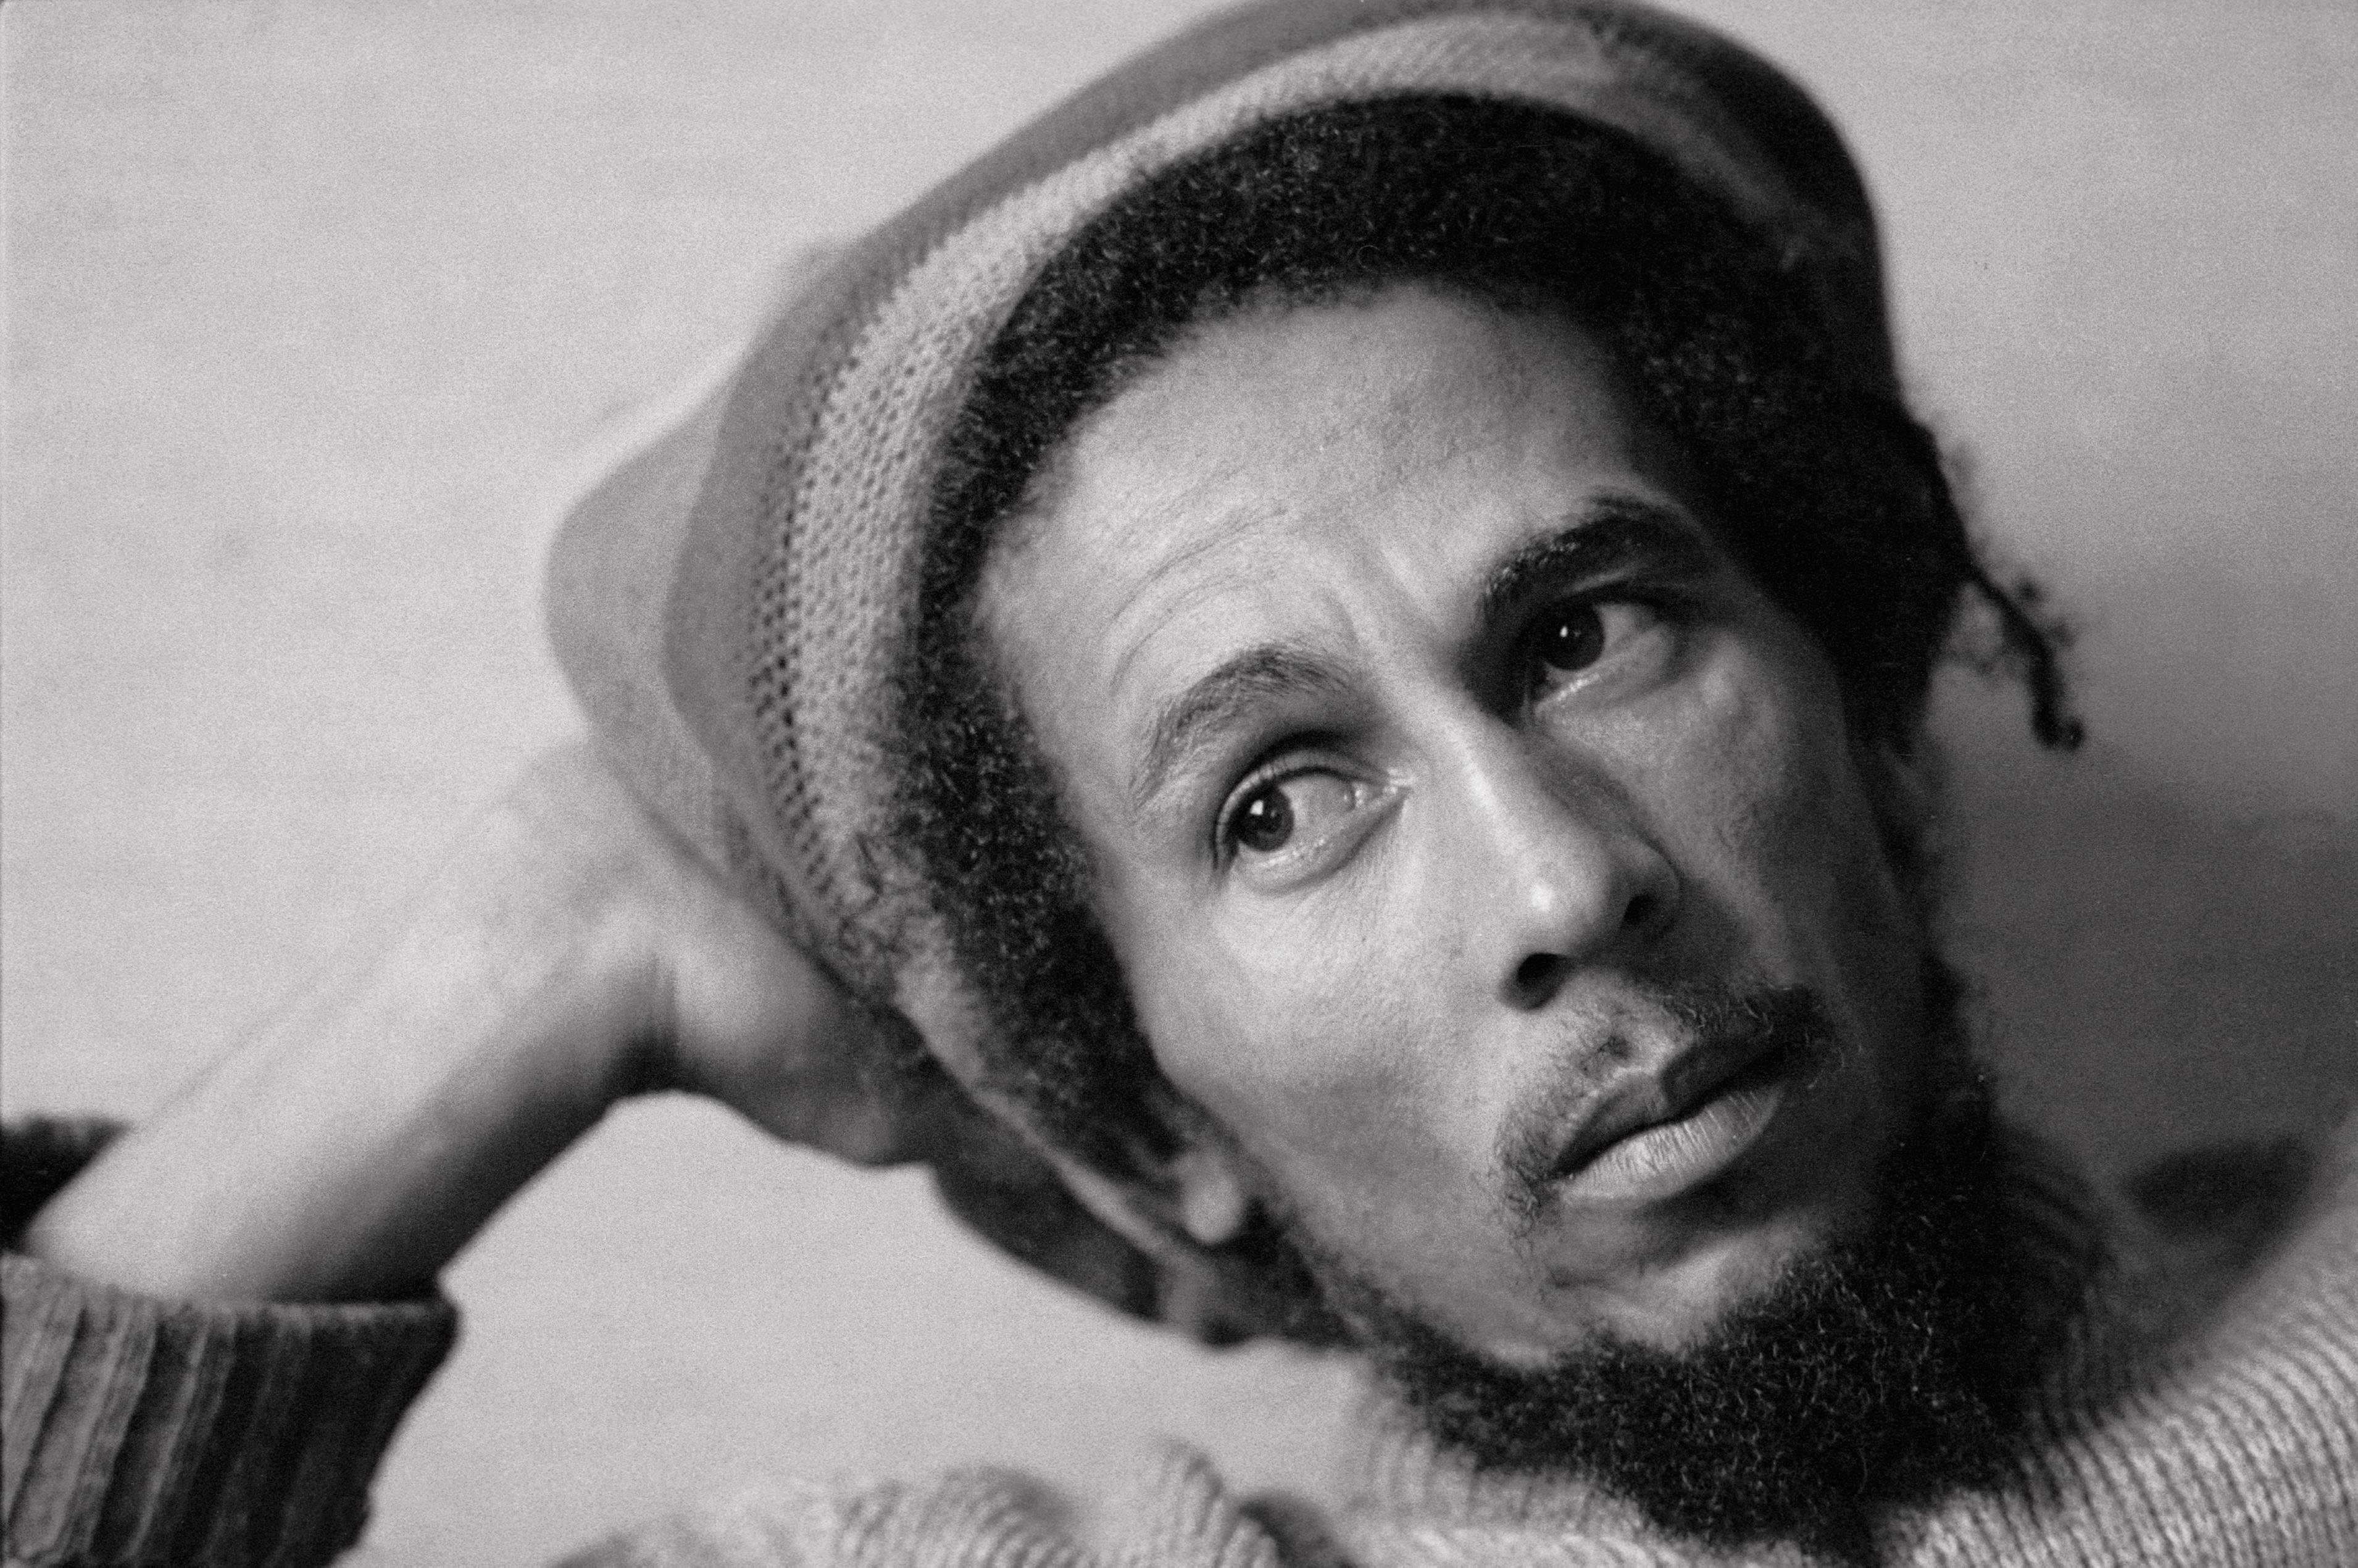 Bob Marley poses with a Jamaican cap for a photo taken on January 01, 1980. | Source: Getty Images